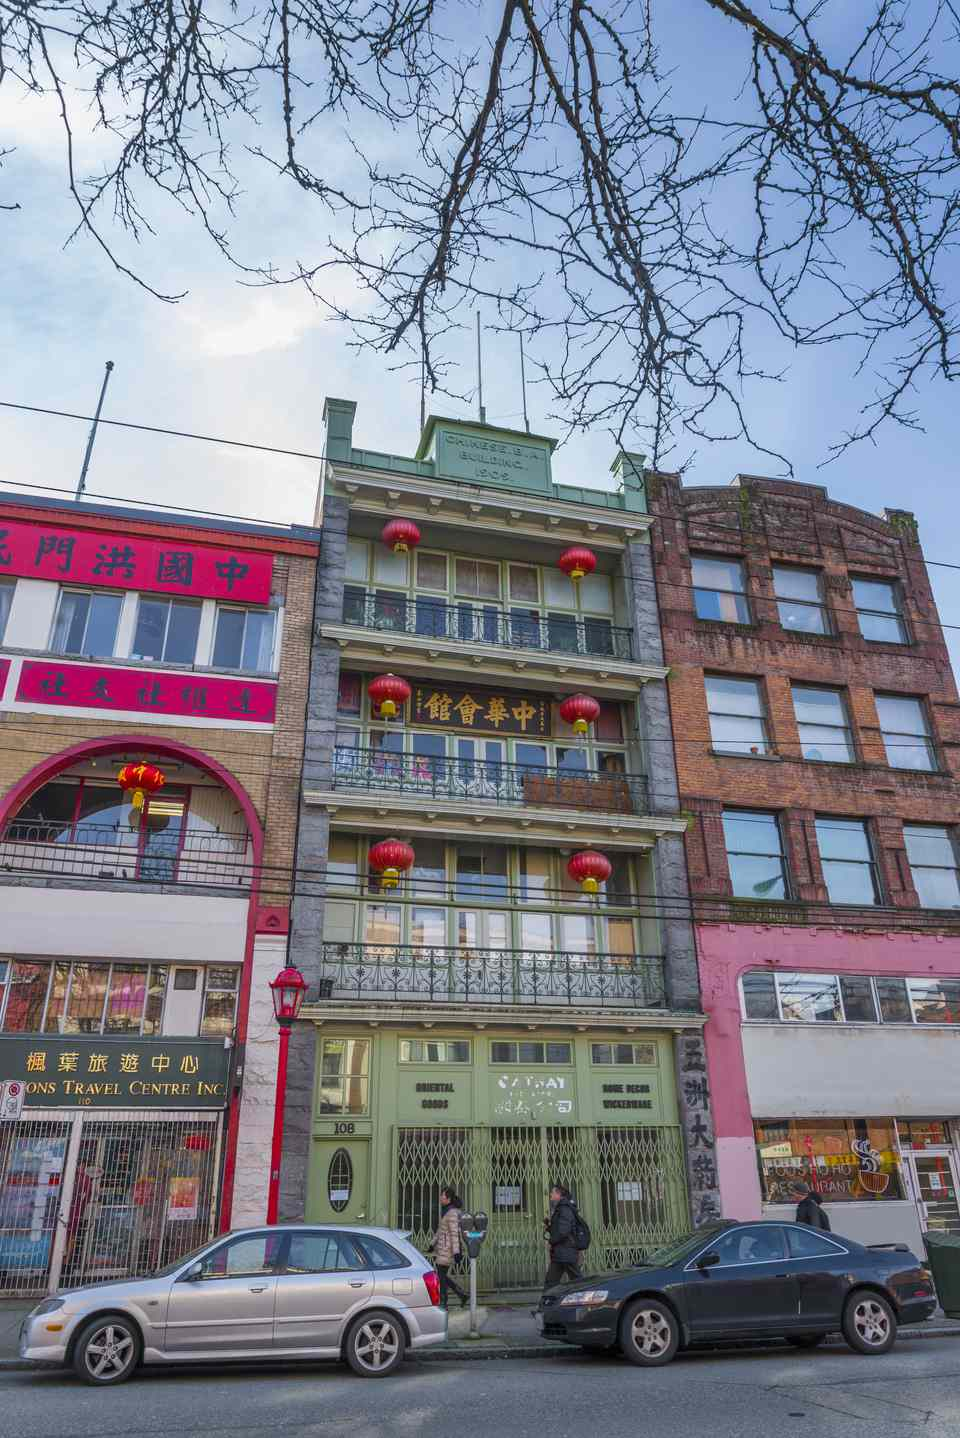 Buildings on Pender Street, Vancouver Chinatown